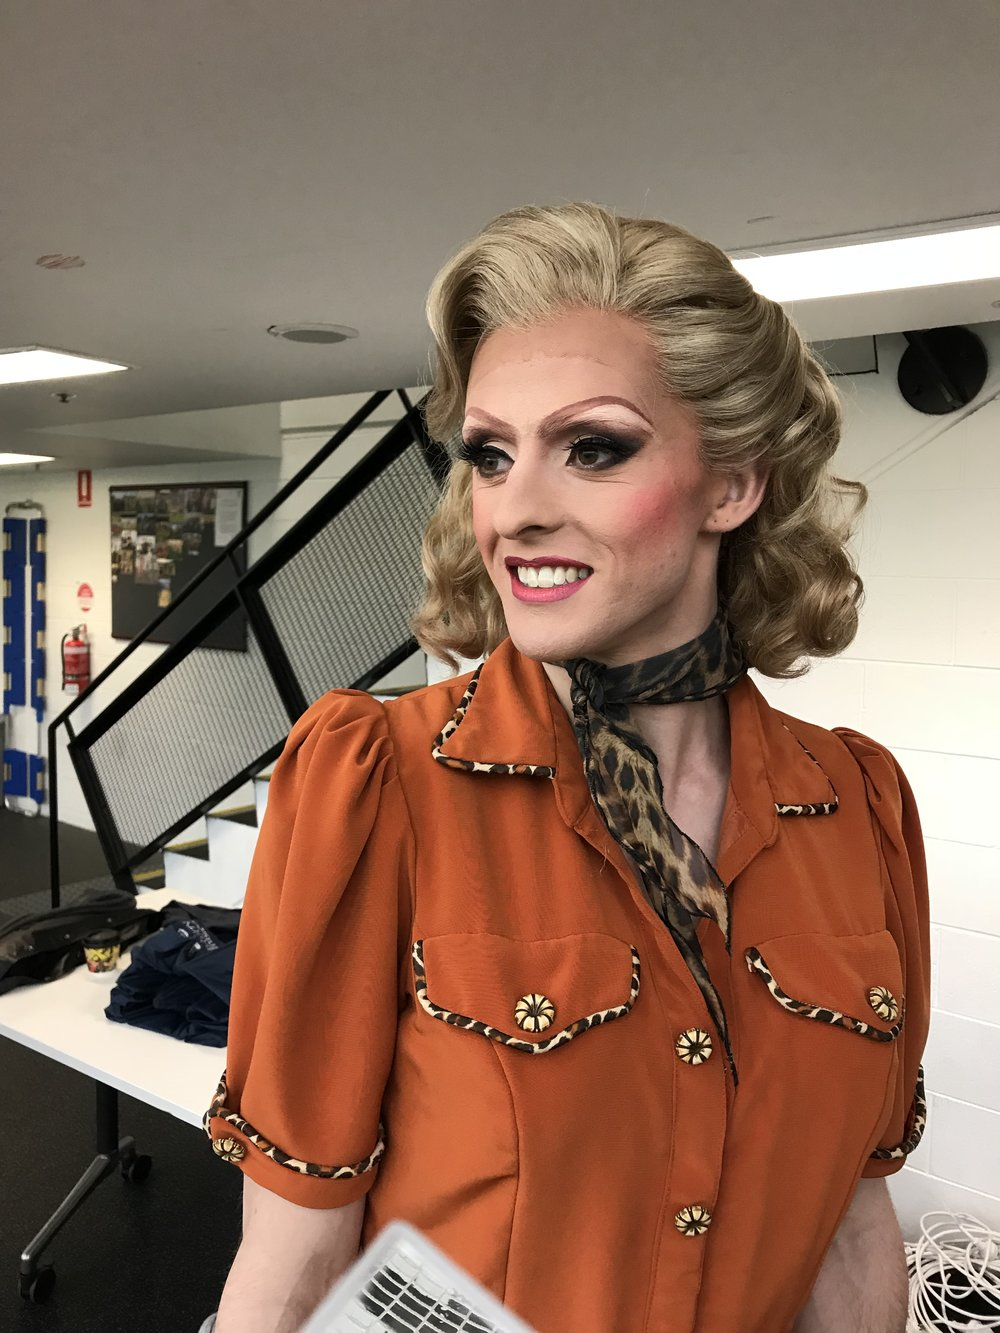 Priscilla The Musical. Bernadette Makeup.jpg